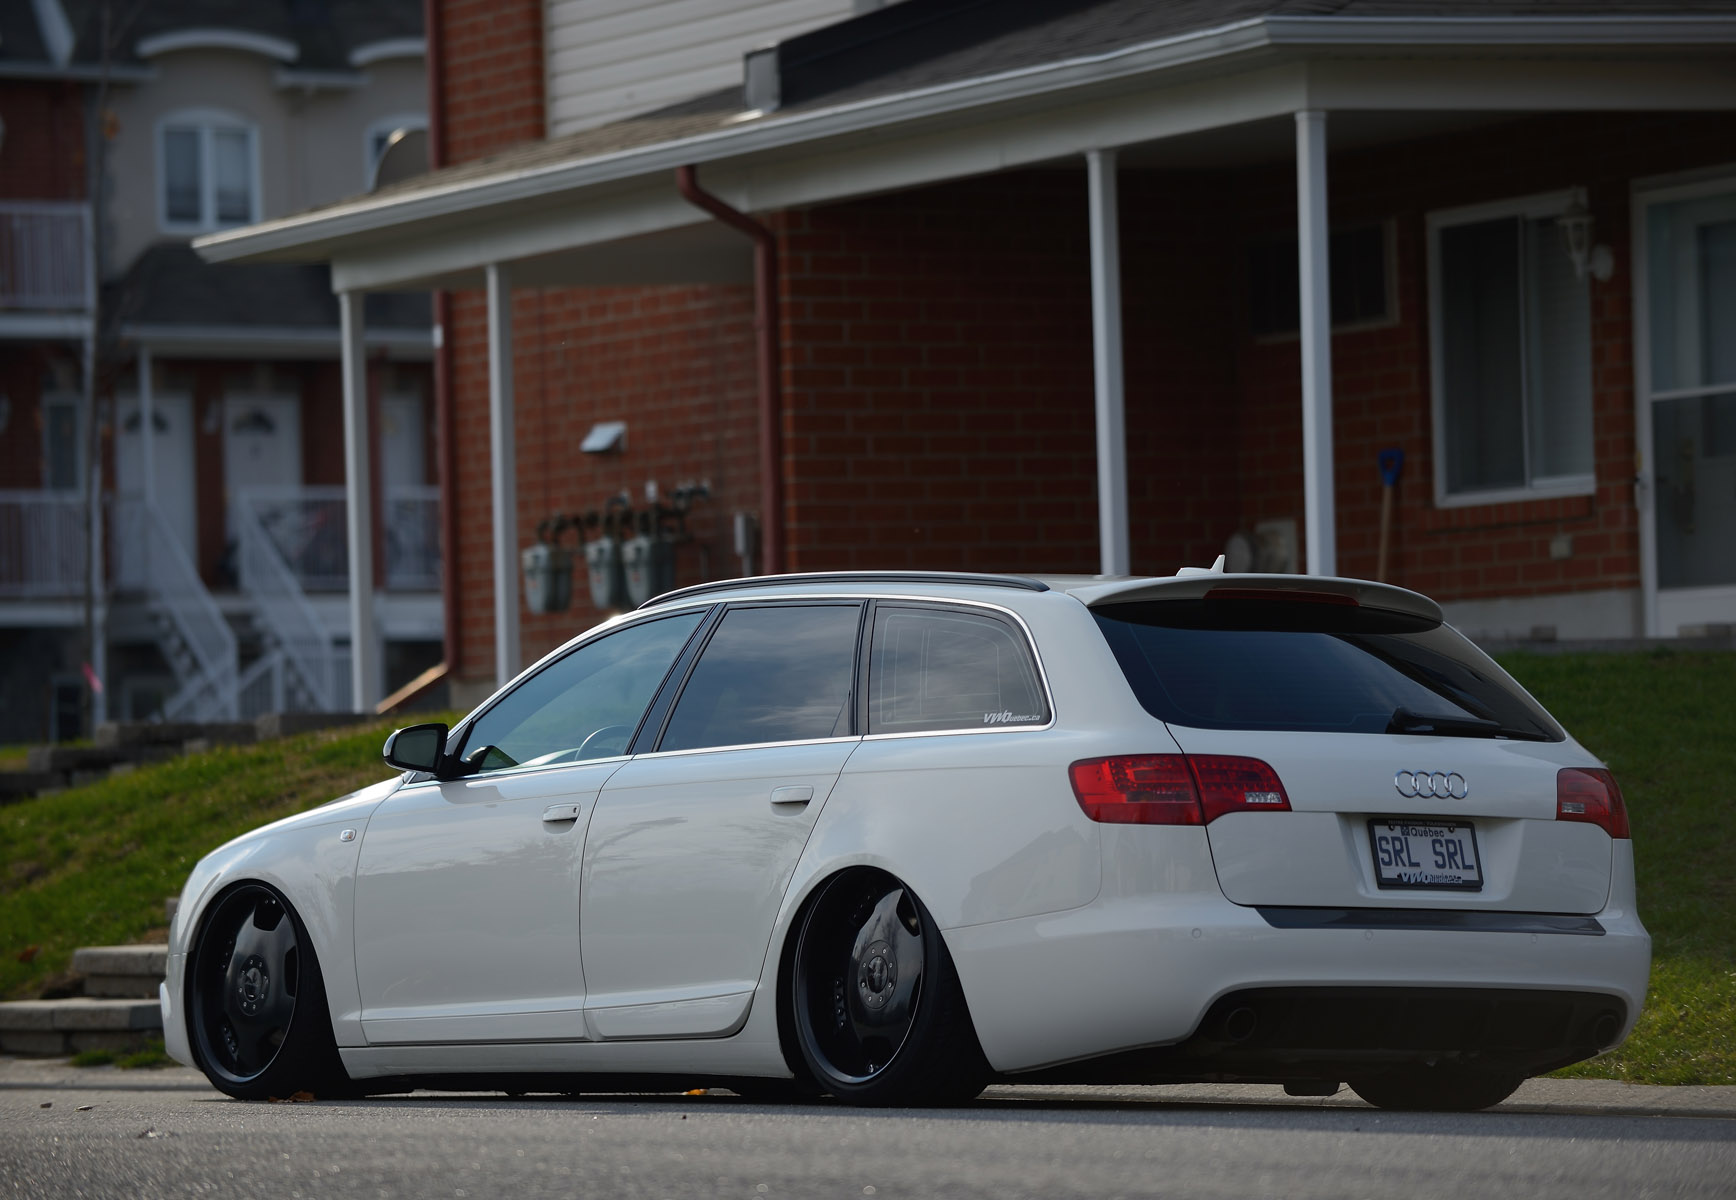 Few Shots Before Storing The Avant For The Winter